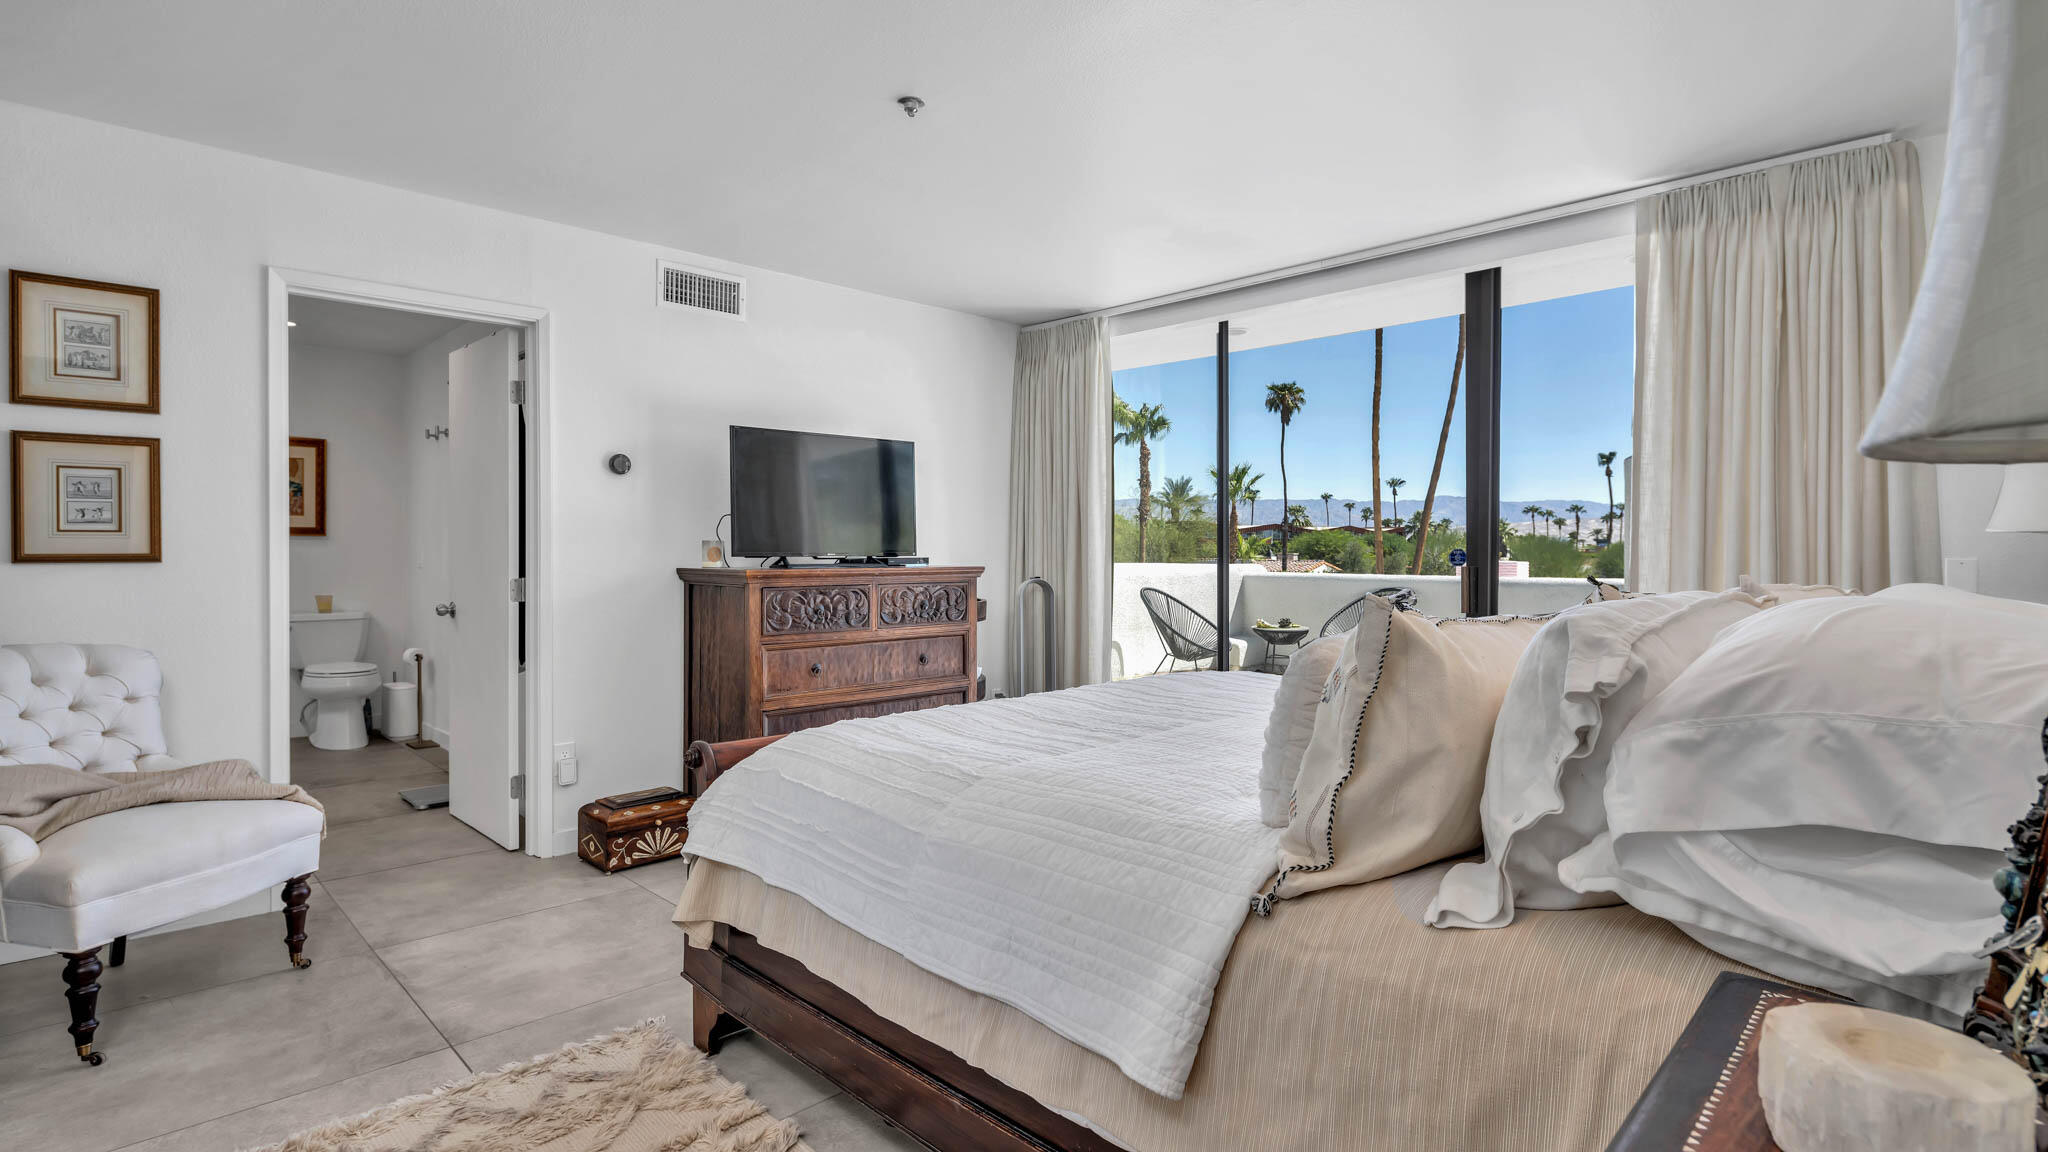 Gorgeous recently remodeled 2-story end unit Condo located in quintessential Little Tuscany just seconds away from Downtown Palm Springs! New kitchen, new bathrooms, entire new landscaping! Private patio with amble room to entertain! Beautiful community pool and spa!